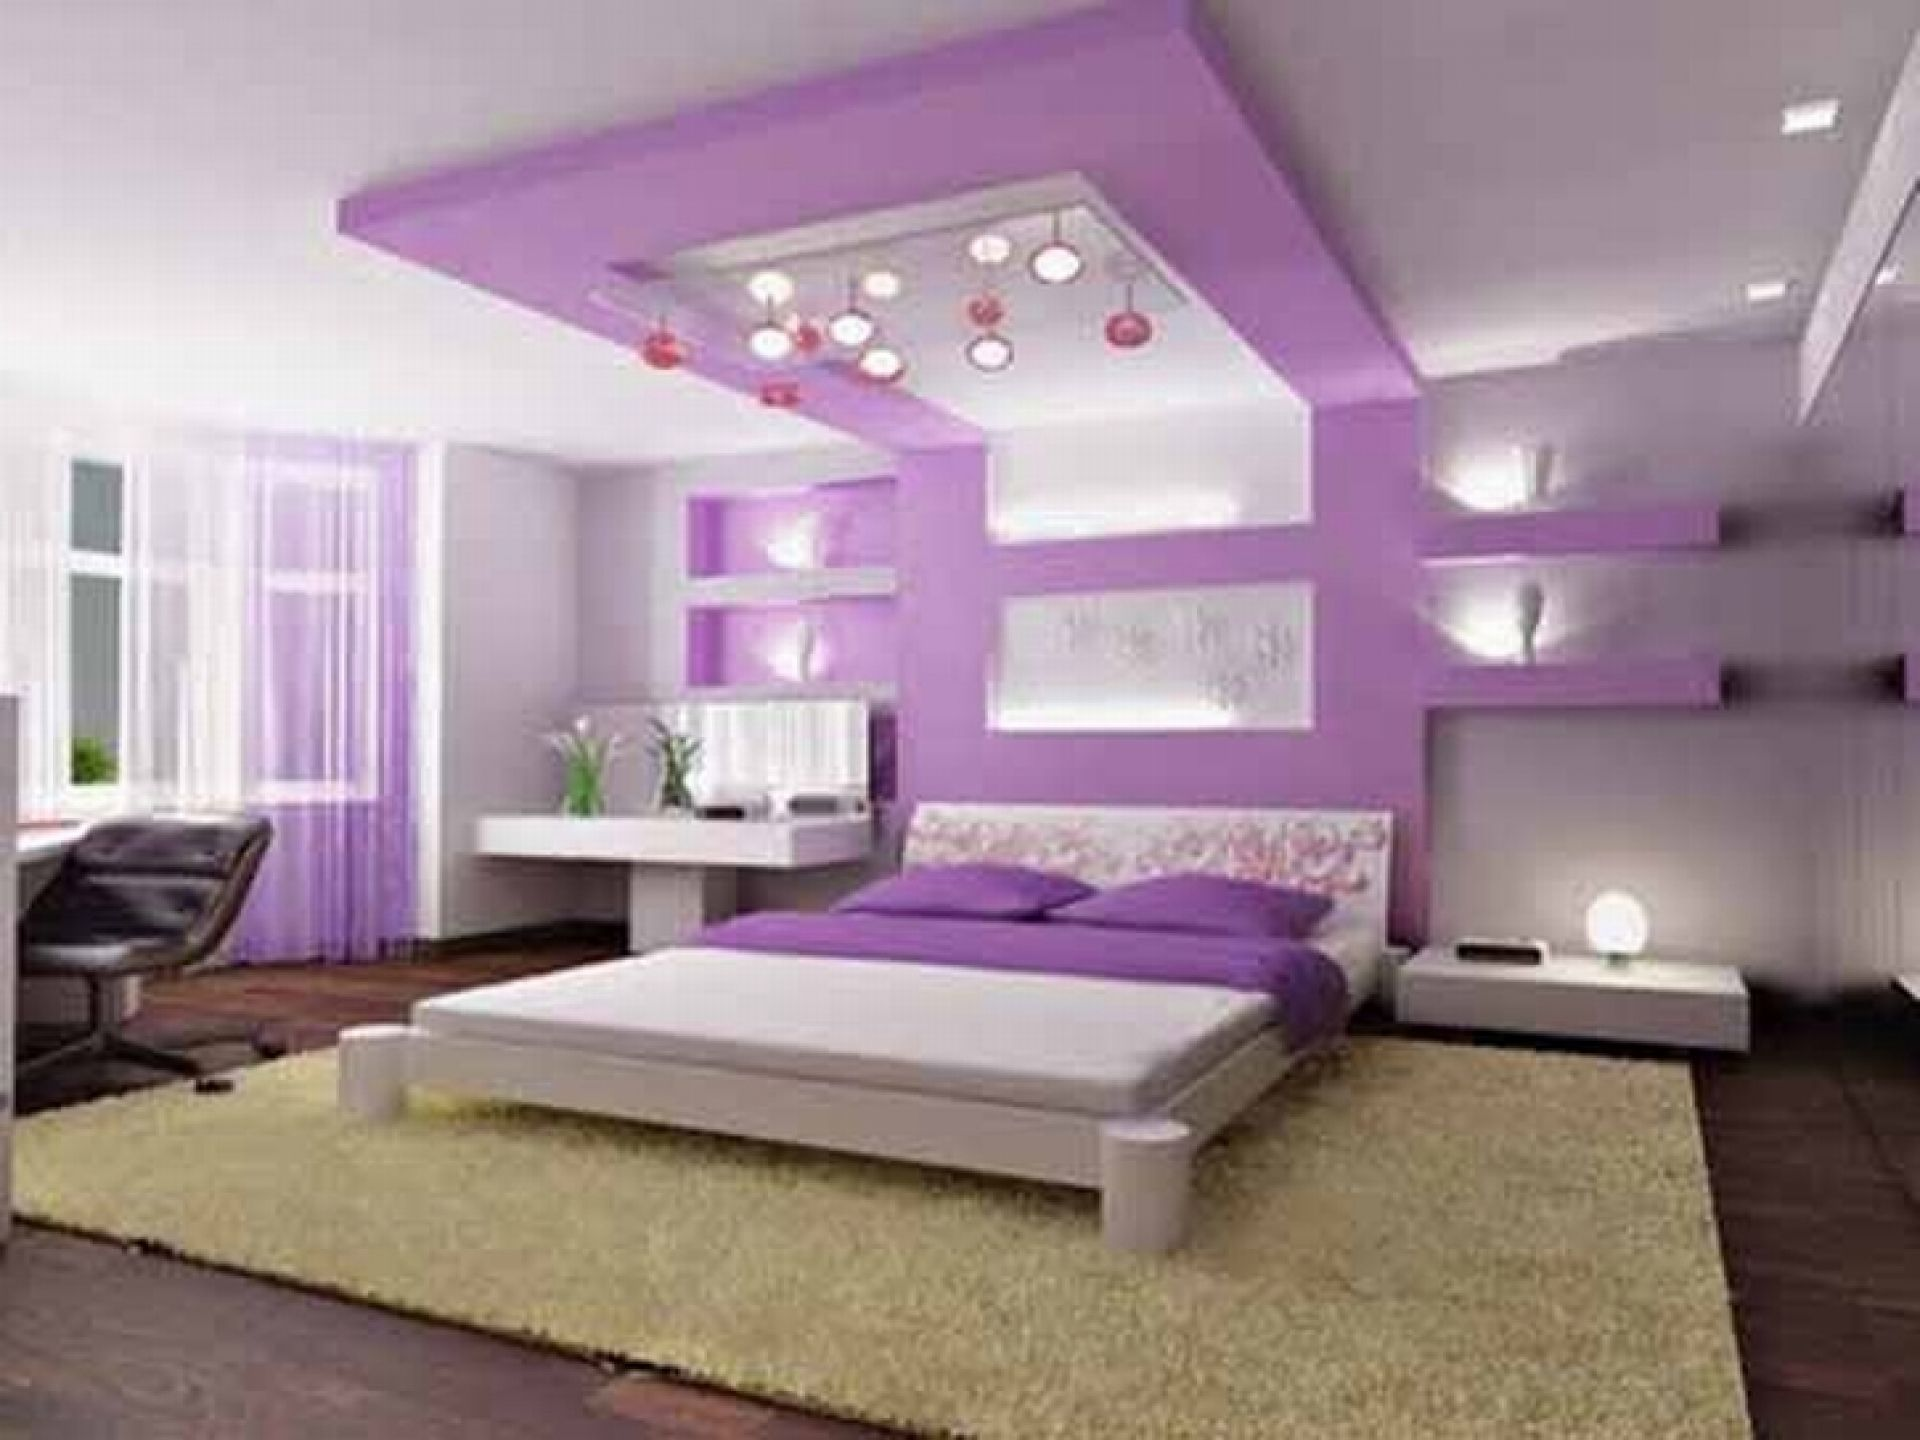 purple room travel wallpaper living world furniture